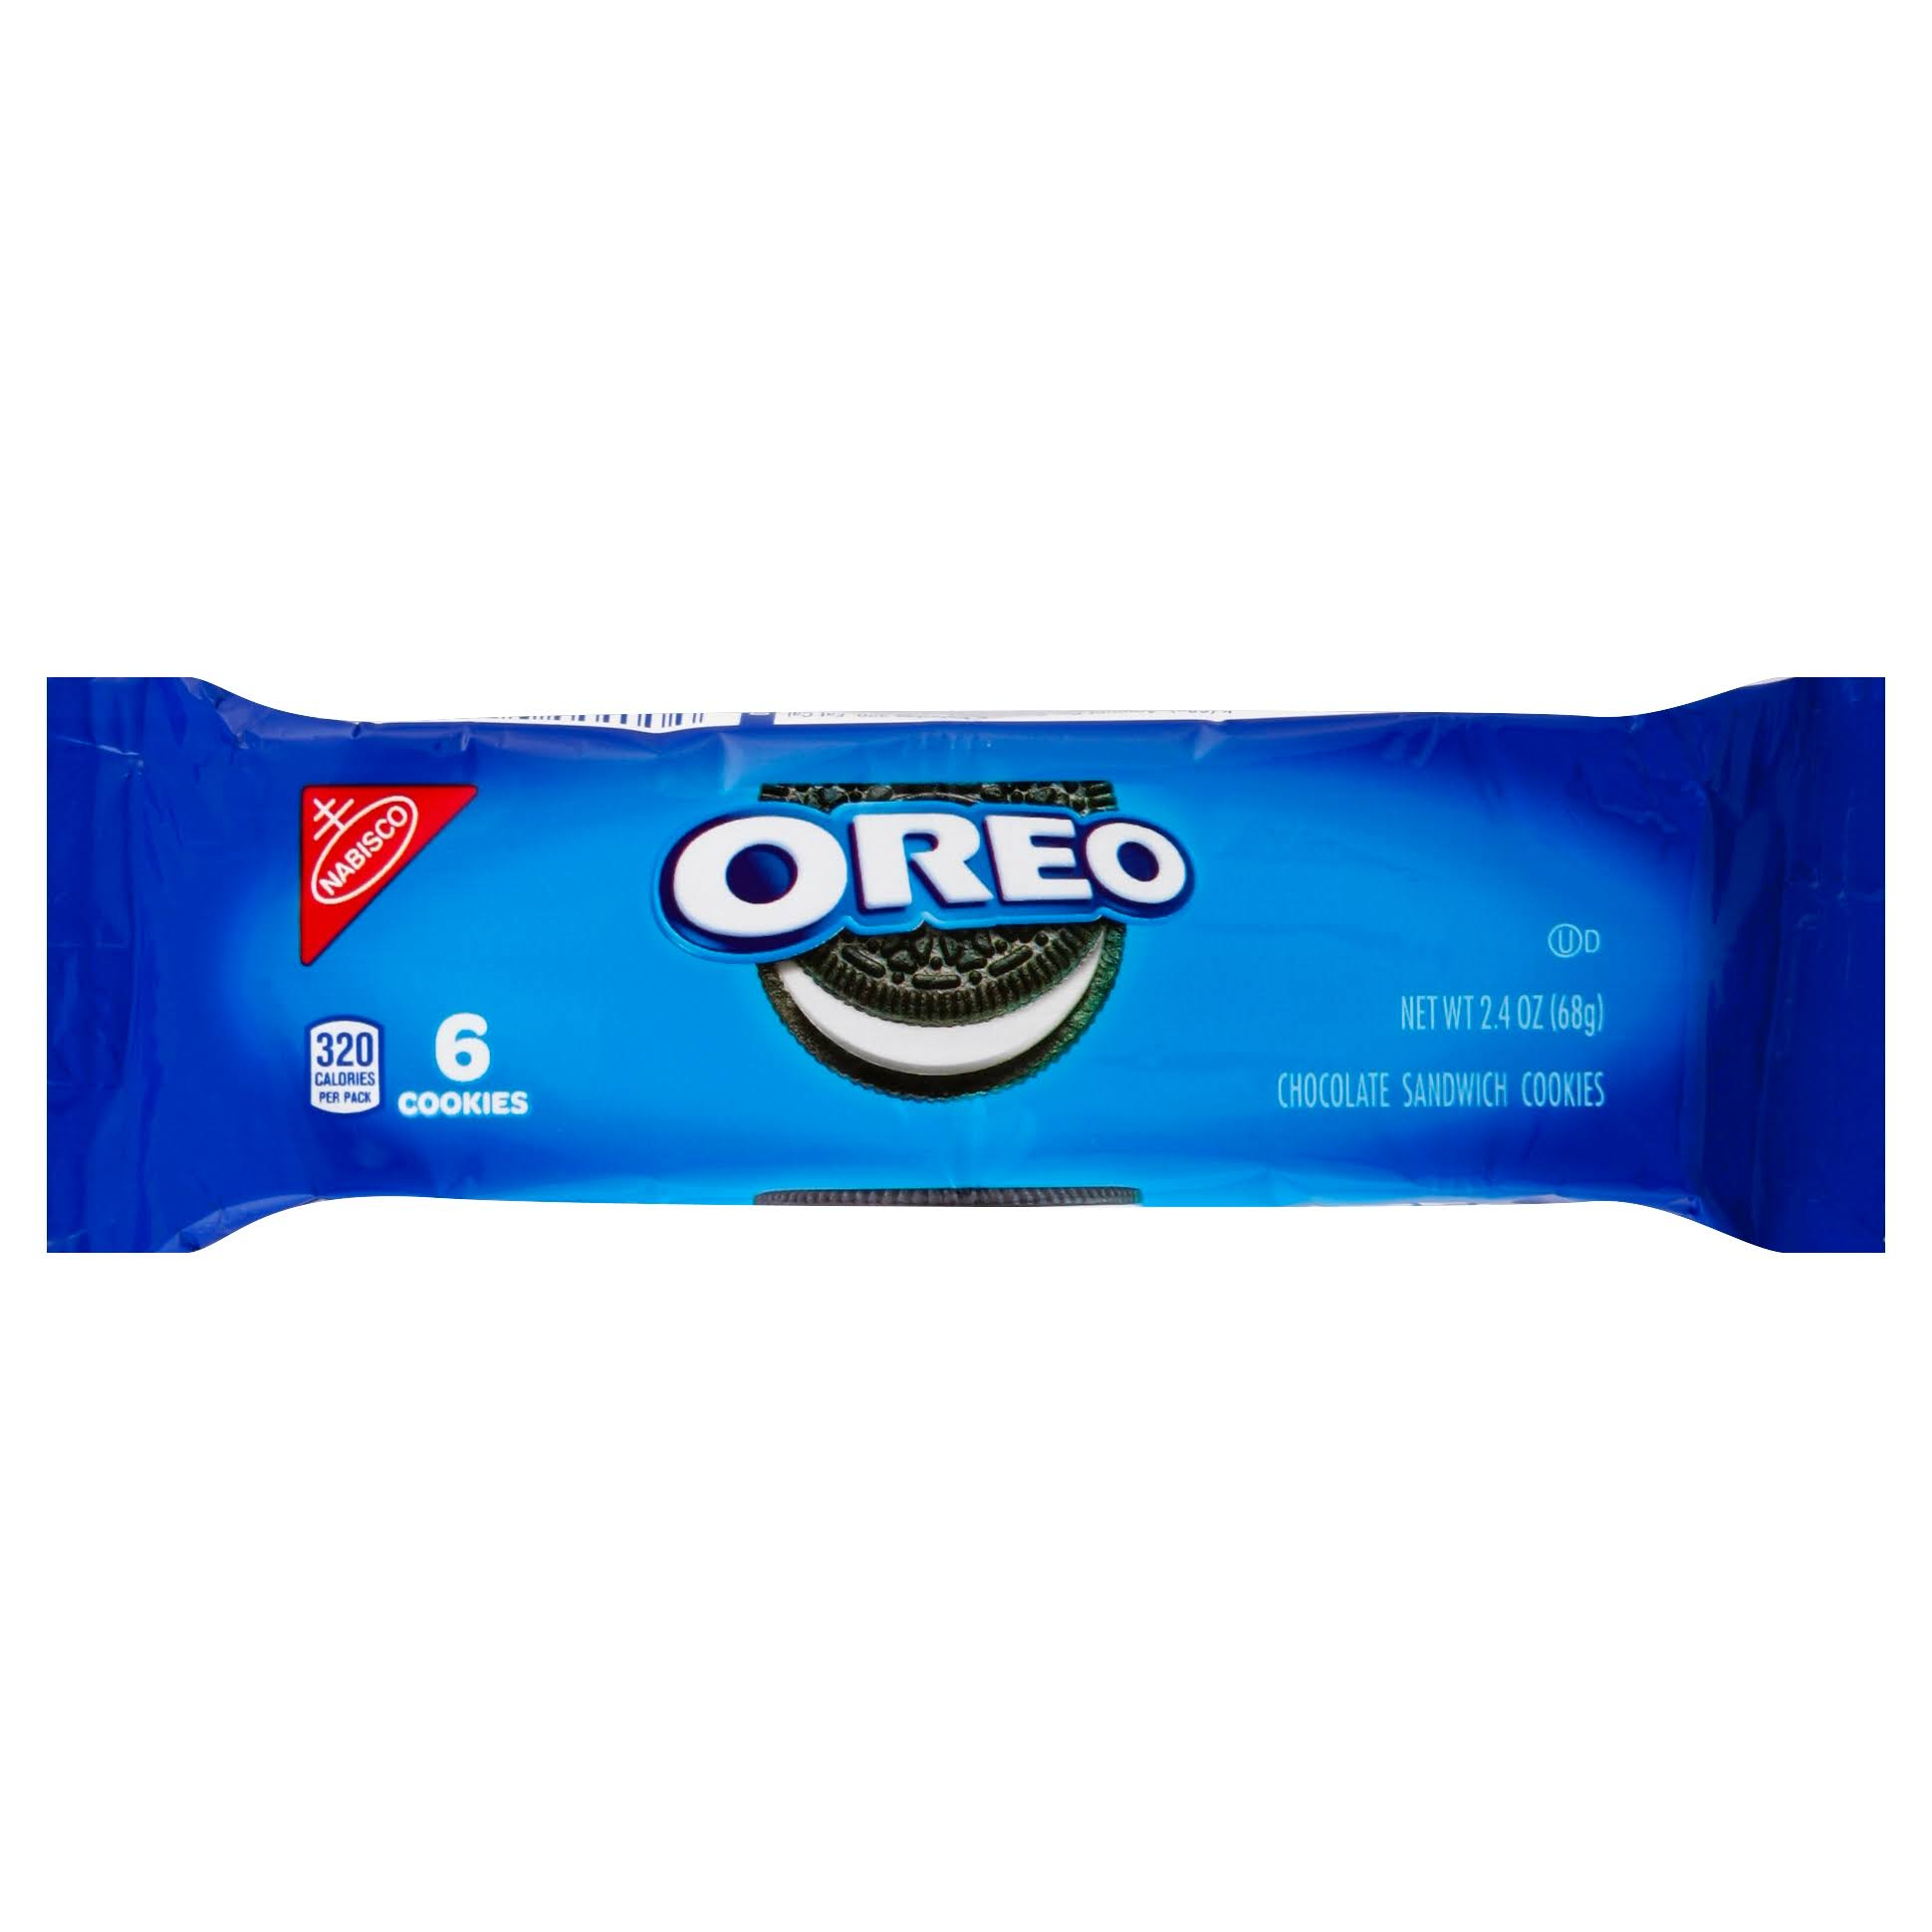 Oreo Cookies, Sandwich, Chocolate - 6 cookies, 2.4 oz